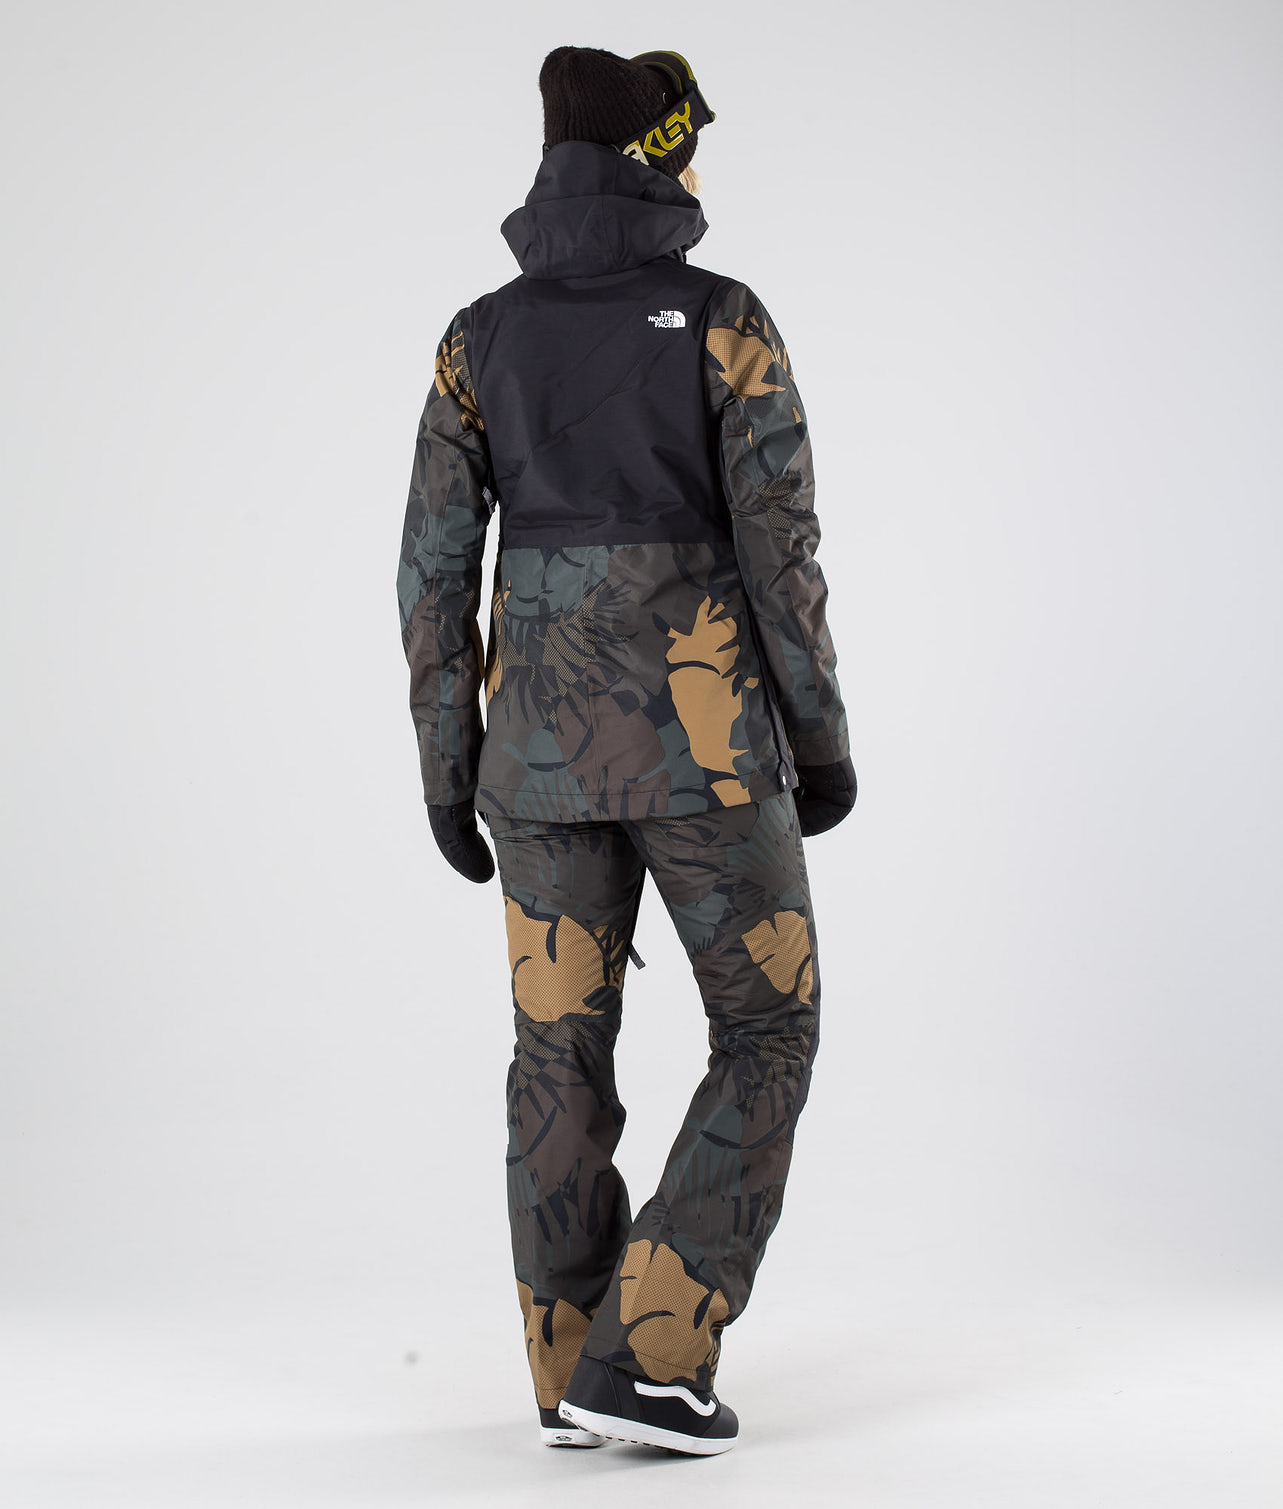 Buy Tanager Snowboard Jacket from The North Face at Ridestore.com - Always free shipping, free returns and 30 days money back guarantee